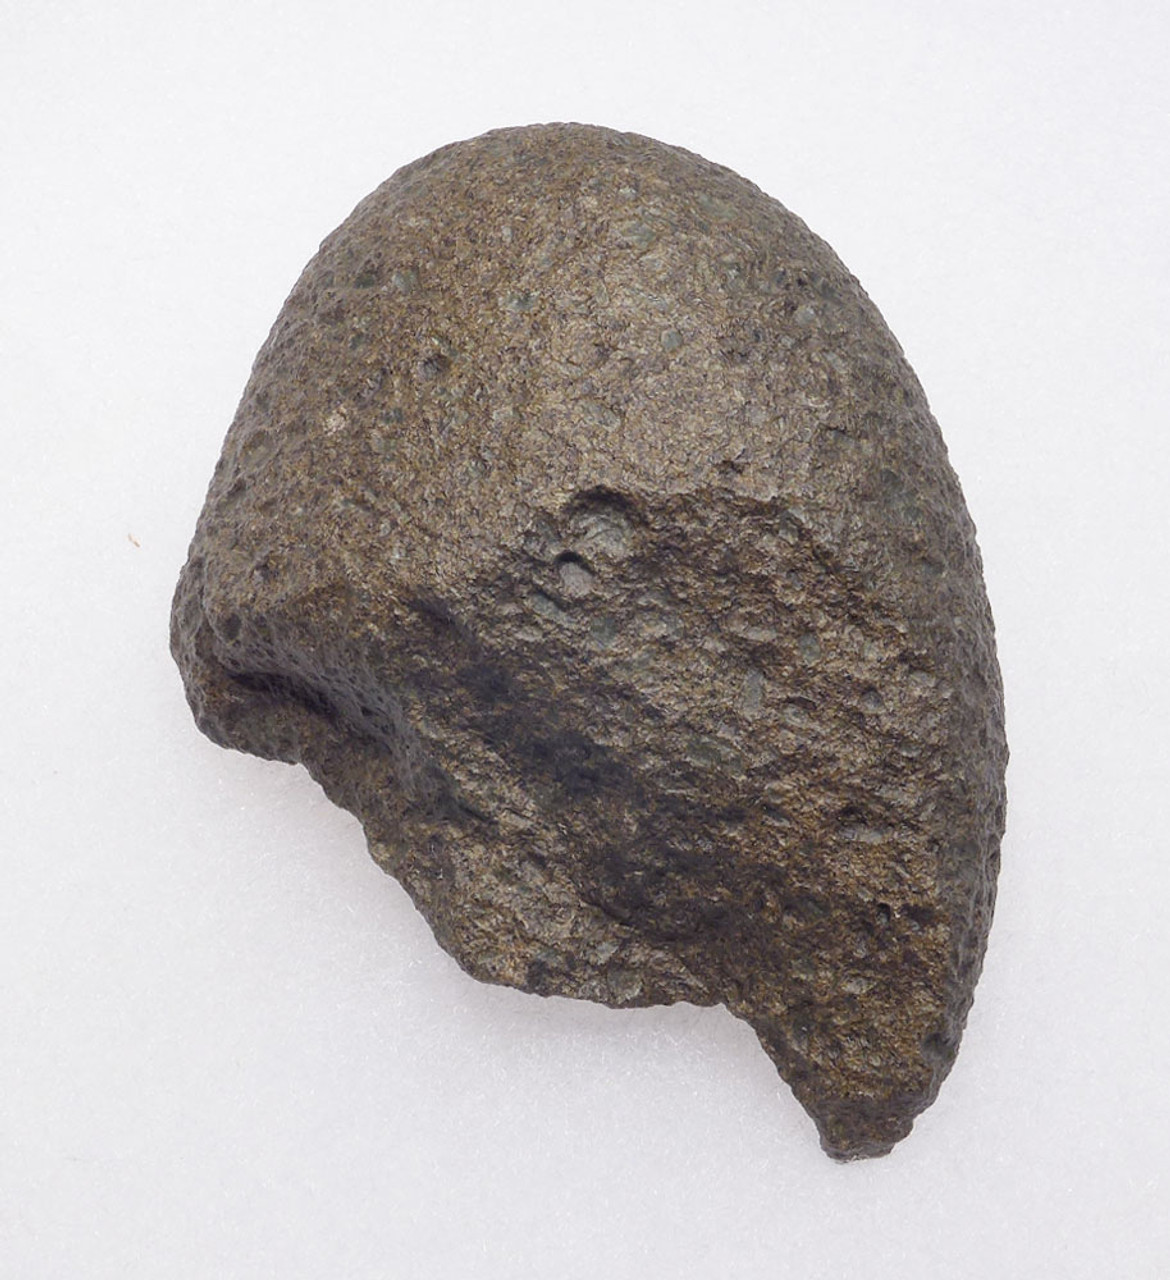 BASALT OLDOWAN PEBBLE CHOPPER AXE WITH SHARP TIP FROM THE LOWER PALEOLITHIC OF AFRICA  *PB136